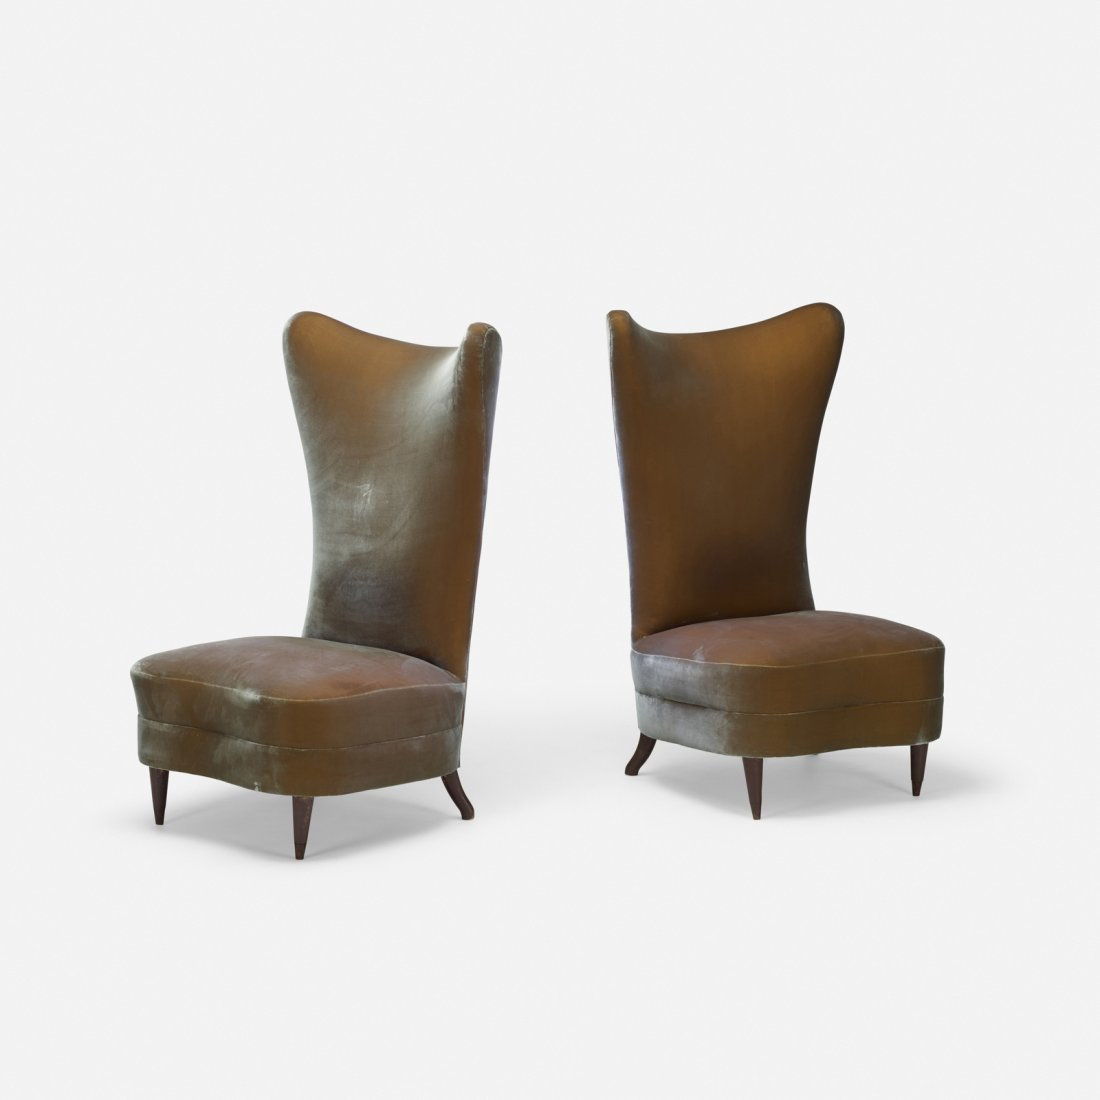 American, slipper chairs, pair